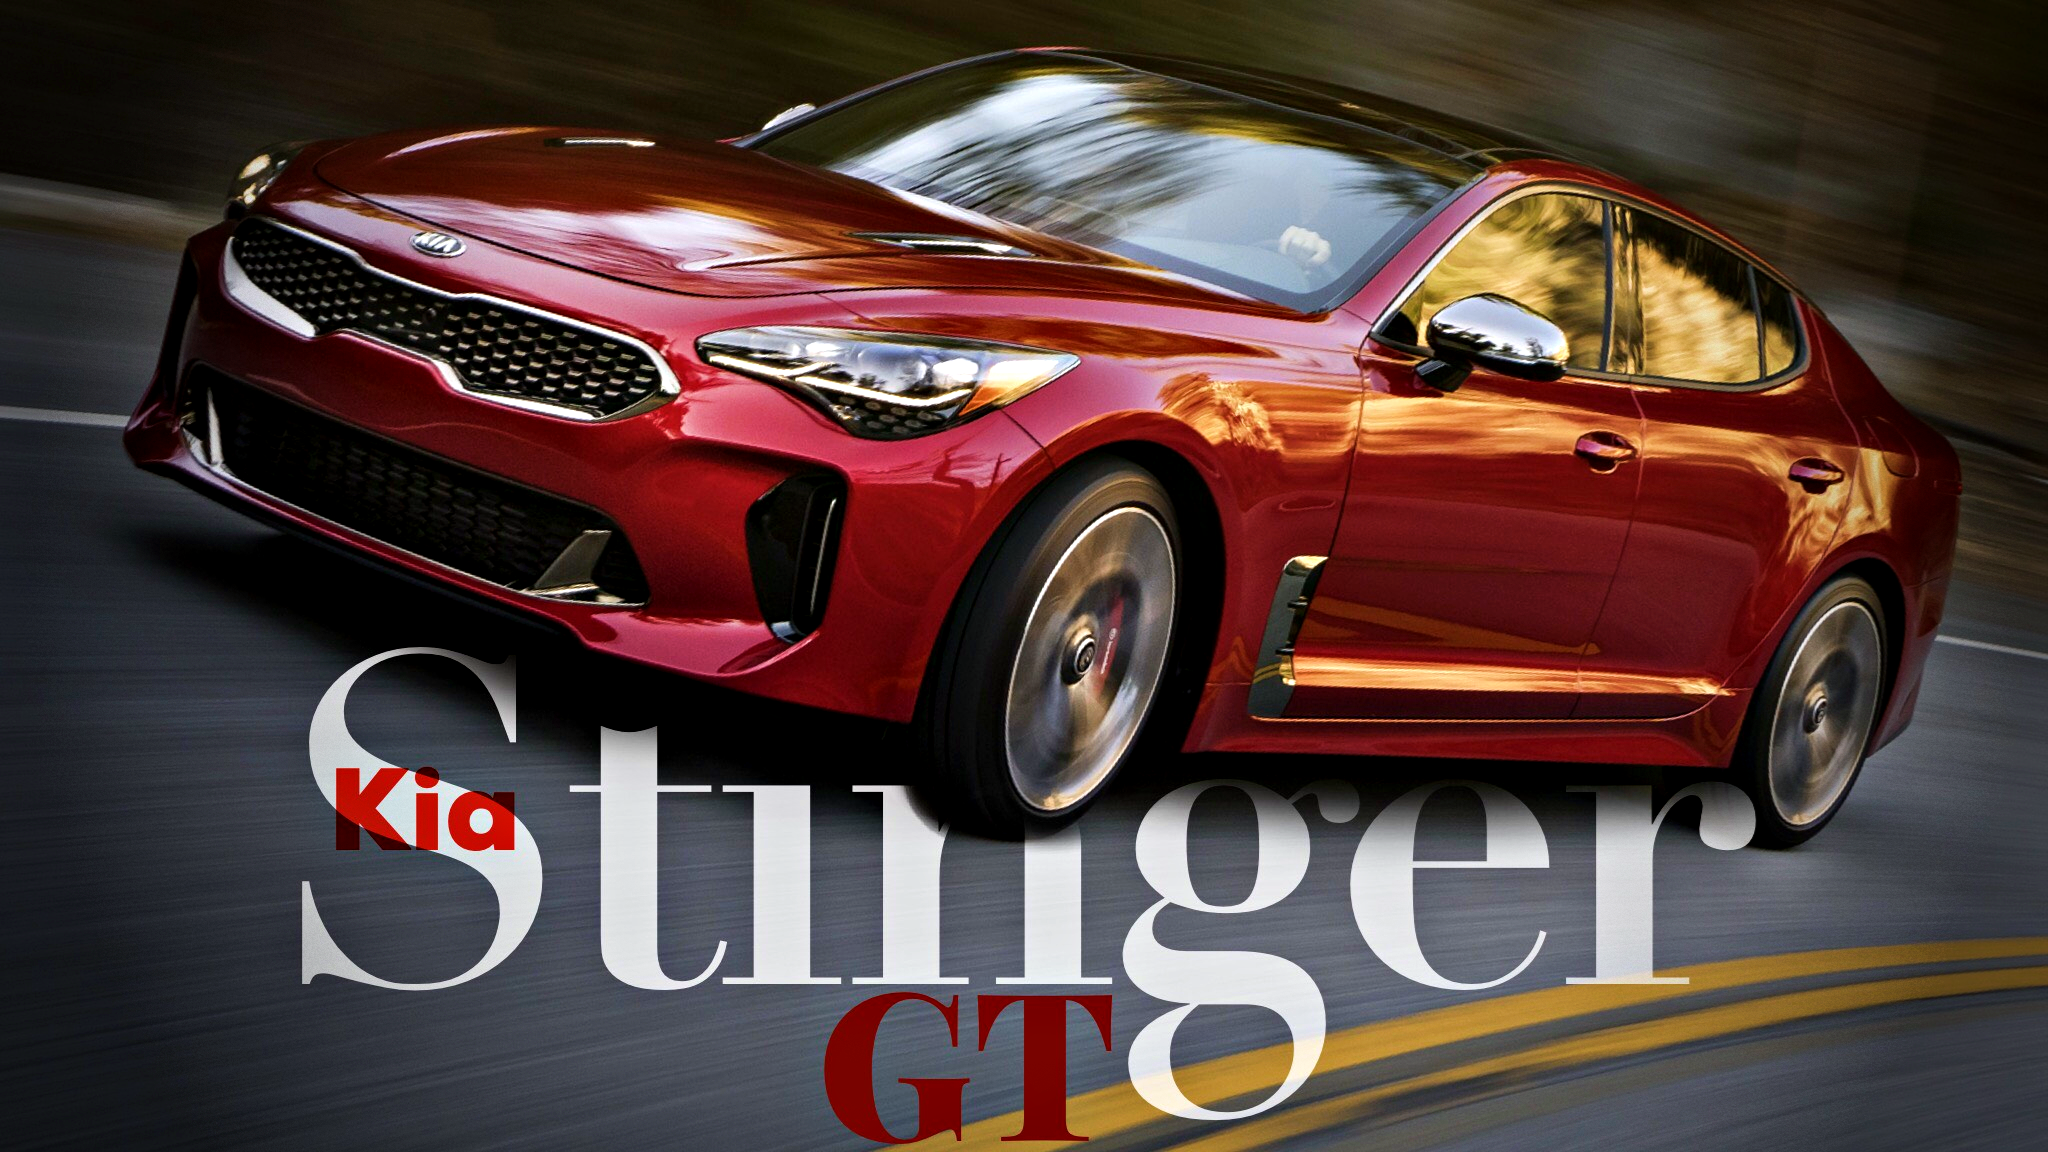 Kia Unveils Stinger GT, 272kW AWD Performance Coupe